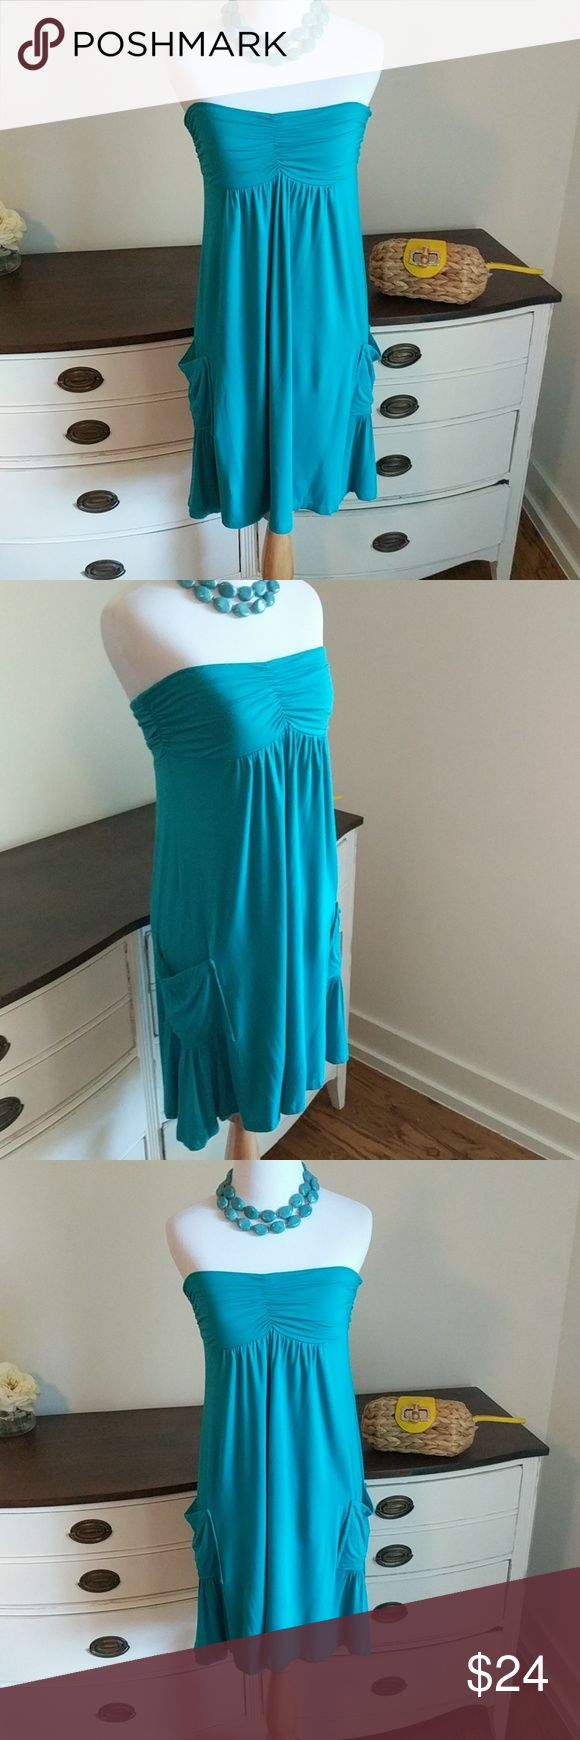 Turquoise American Rag dress with pockets! Super cute and flattering American Rag dress. American Rag Dresses